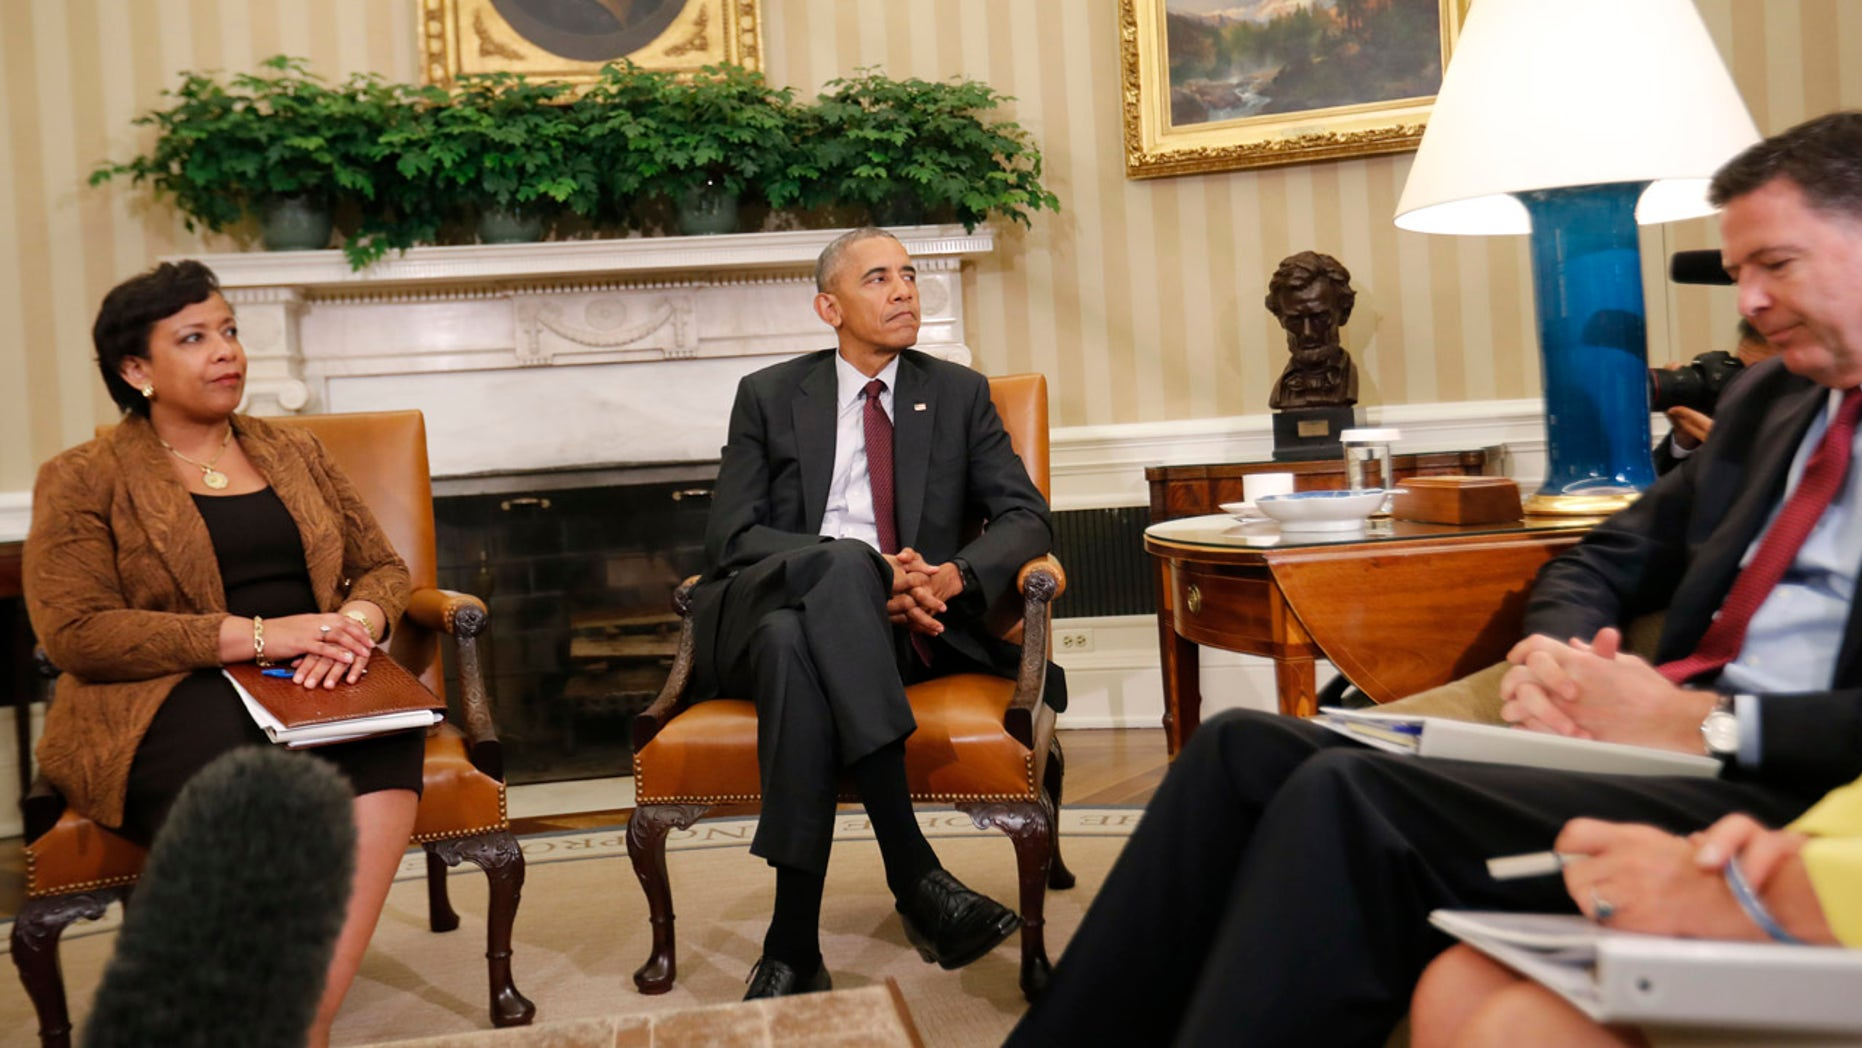 July 19, 2016: President Barack Obama, center, with Attorney General Loretta Lynch, left, and FBI Director James Comey, right, sit during their meeting in the Oval Office of the White House in Washington